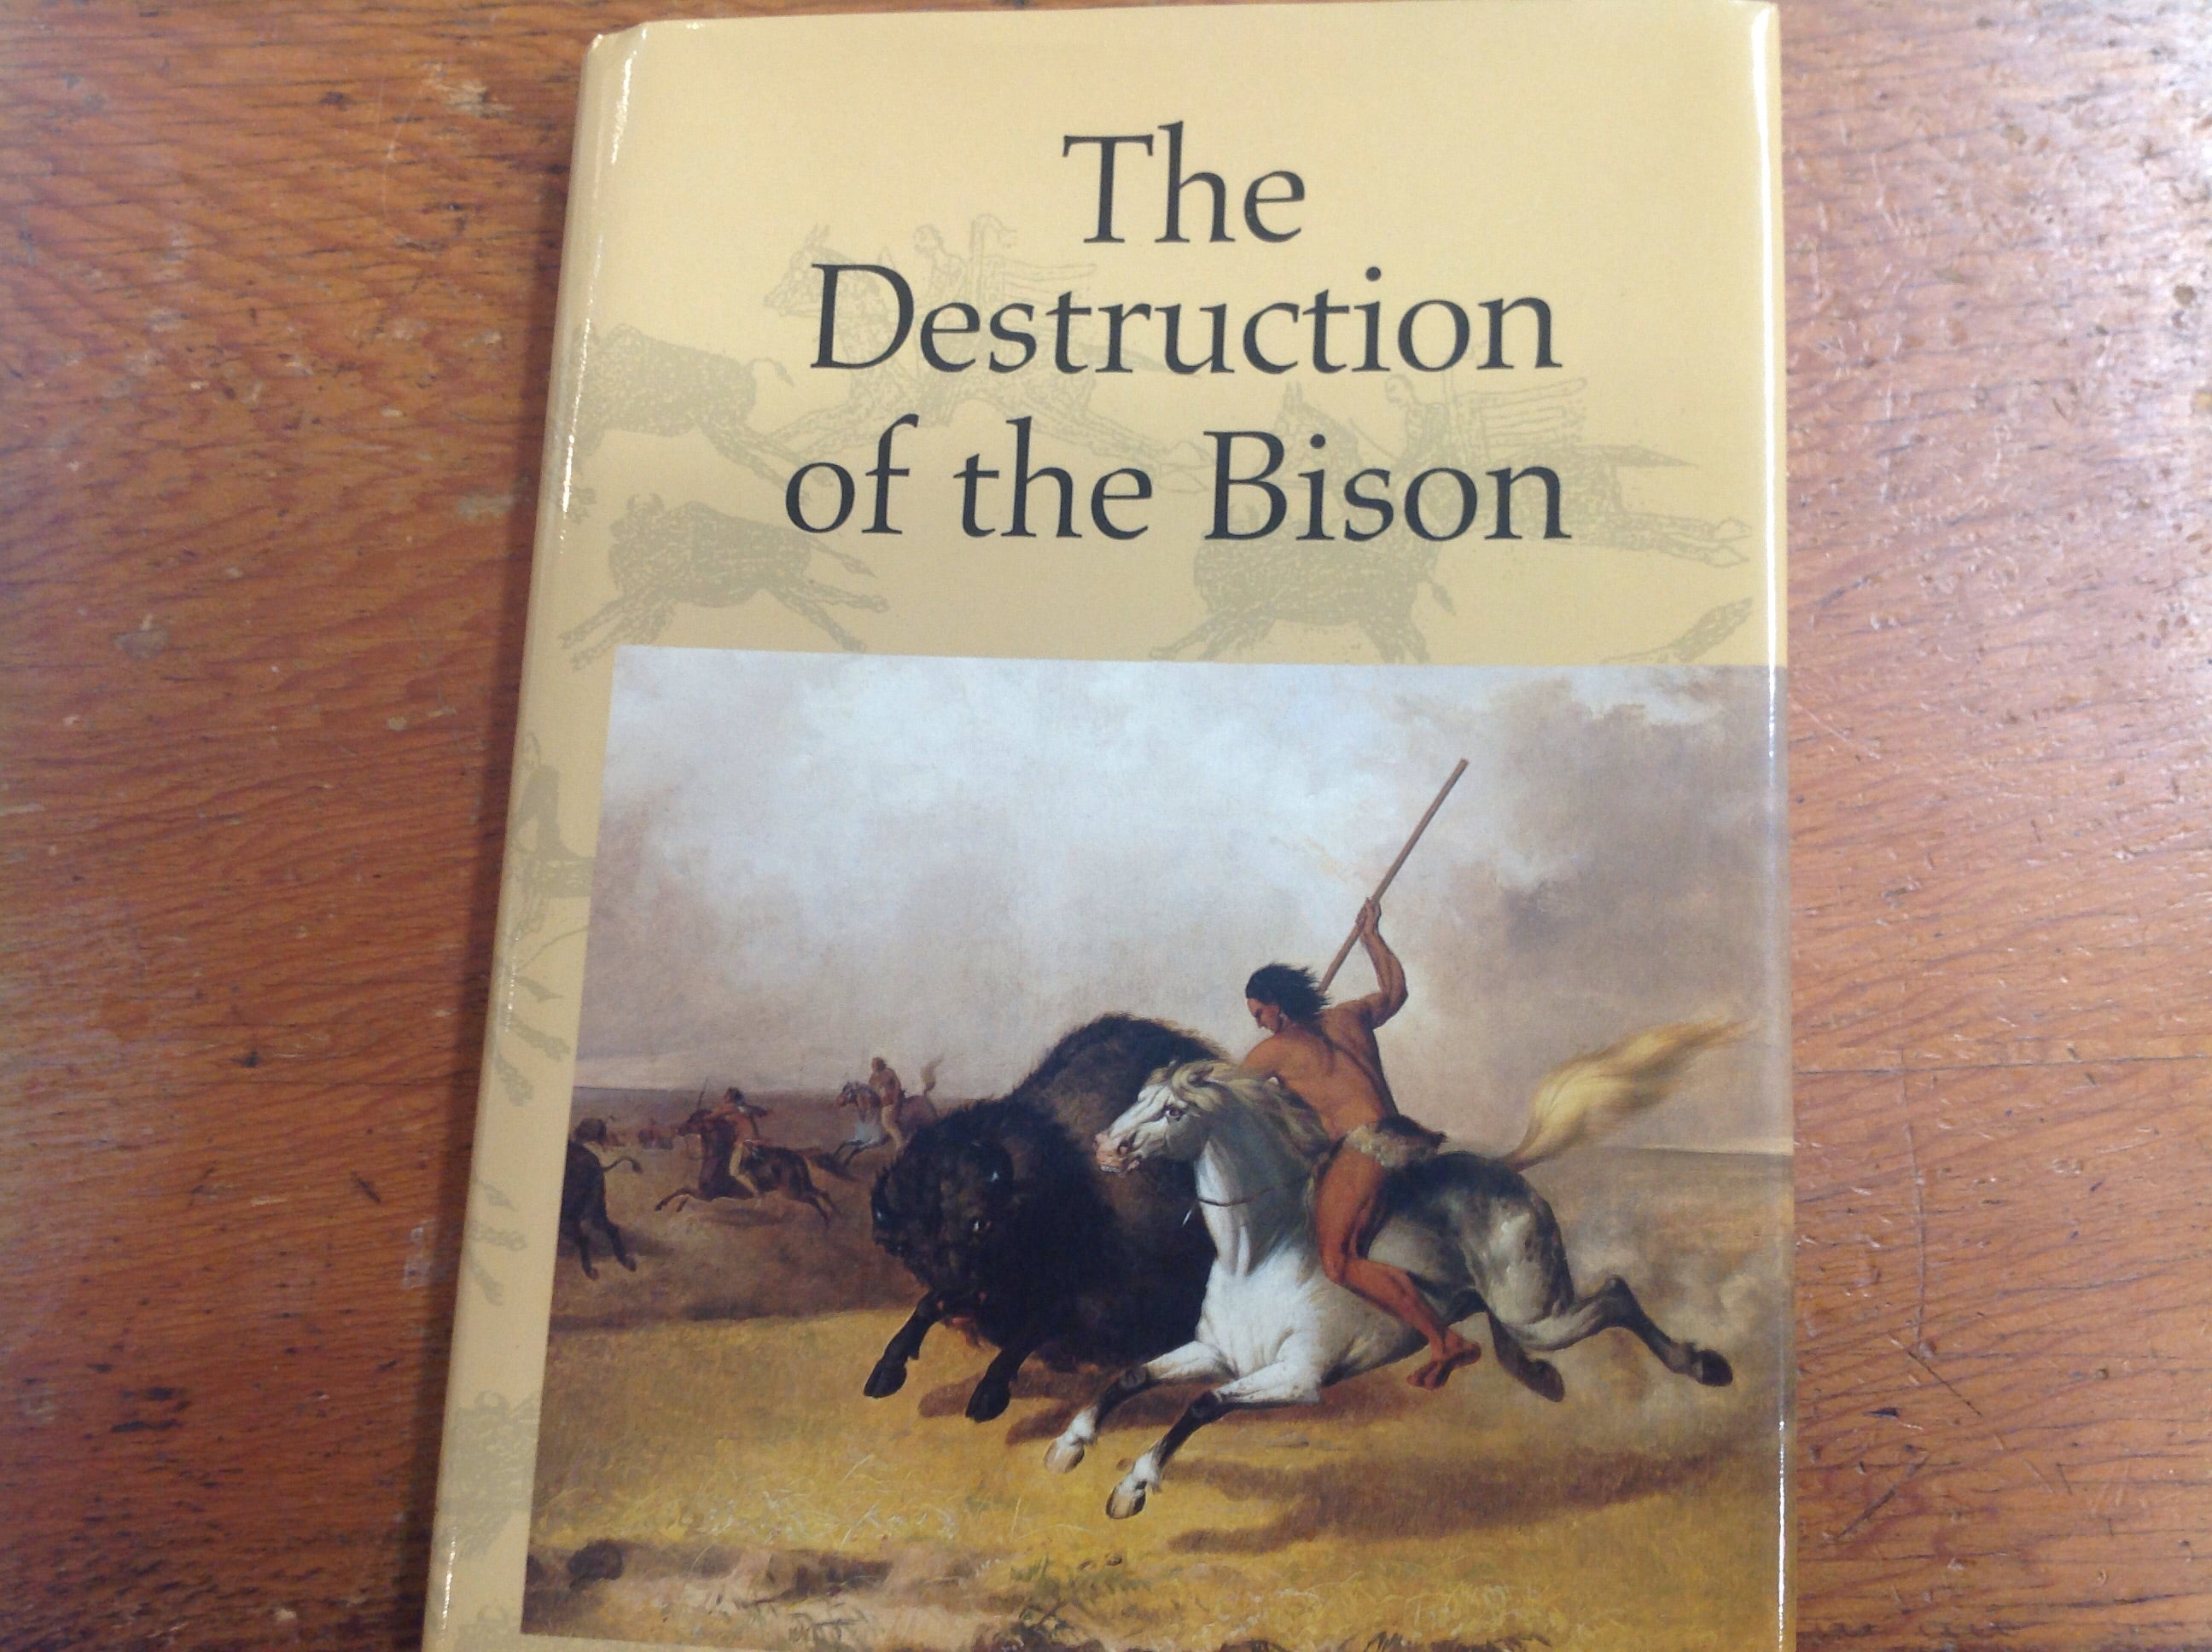 Books - The Destruction of the Bison